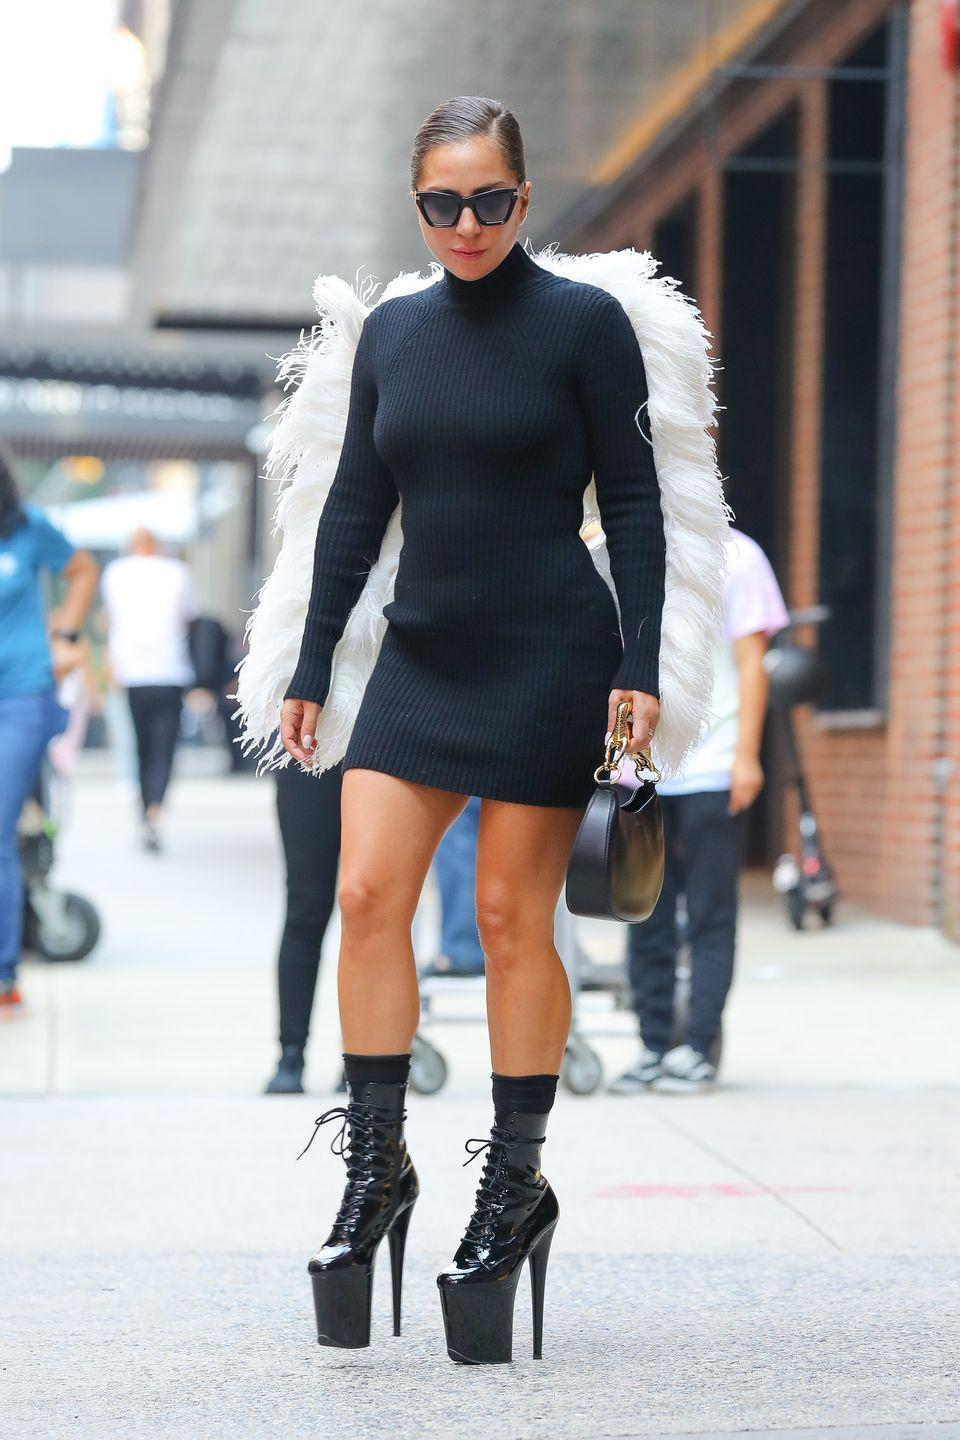 """<p>The multi-hyphenate kept her high fashion credentials while out in New York by stepping out in sky-high heels, a feather-winged mini dress and the 'Hobo Cat' handbag all by Lanvin.</p><p><a class=""""link rapid-noclick-resp"""" href=""""https://www.lanvin.com/gb/hobo-cat-bag-sm-in-lamb-leather-lw-bgshc1-napa-a2110.html"""" rel=""""nofollow noopener"""" target=""""_blank"""" data-ylk=""""slk:SHOP LADY GAGA'S HANDBAG NOW"""">SHOP LADY GAGA'S HANDBAG NOW</a></p>"""